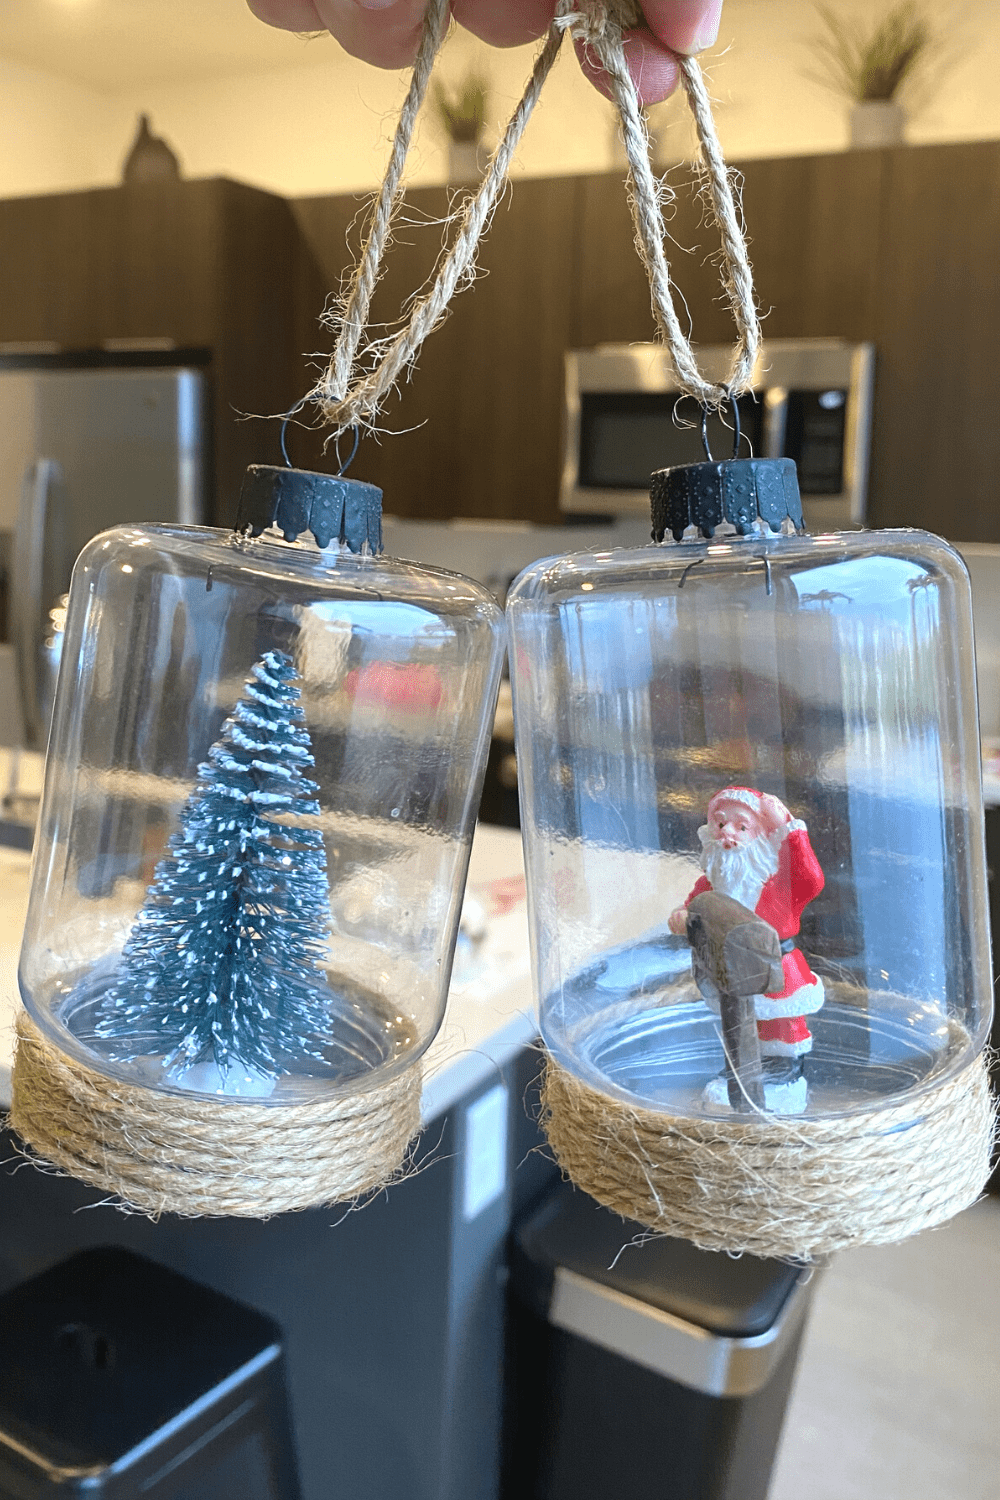 DIY Rustic Christmas Ornaments with Twine